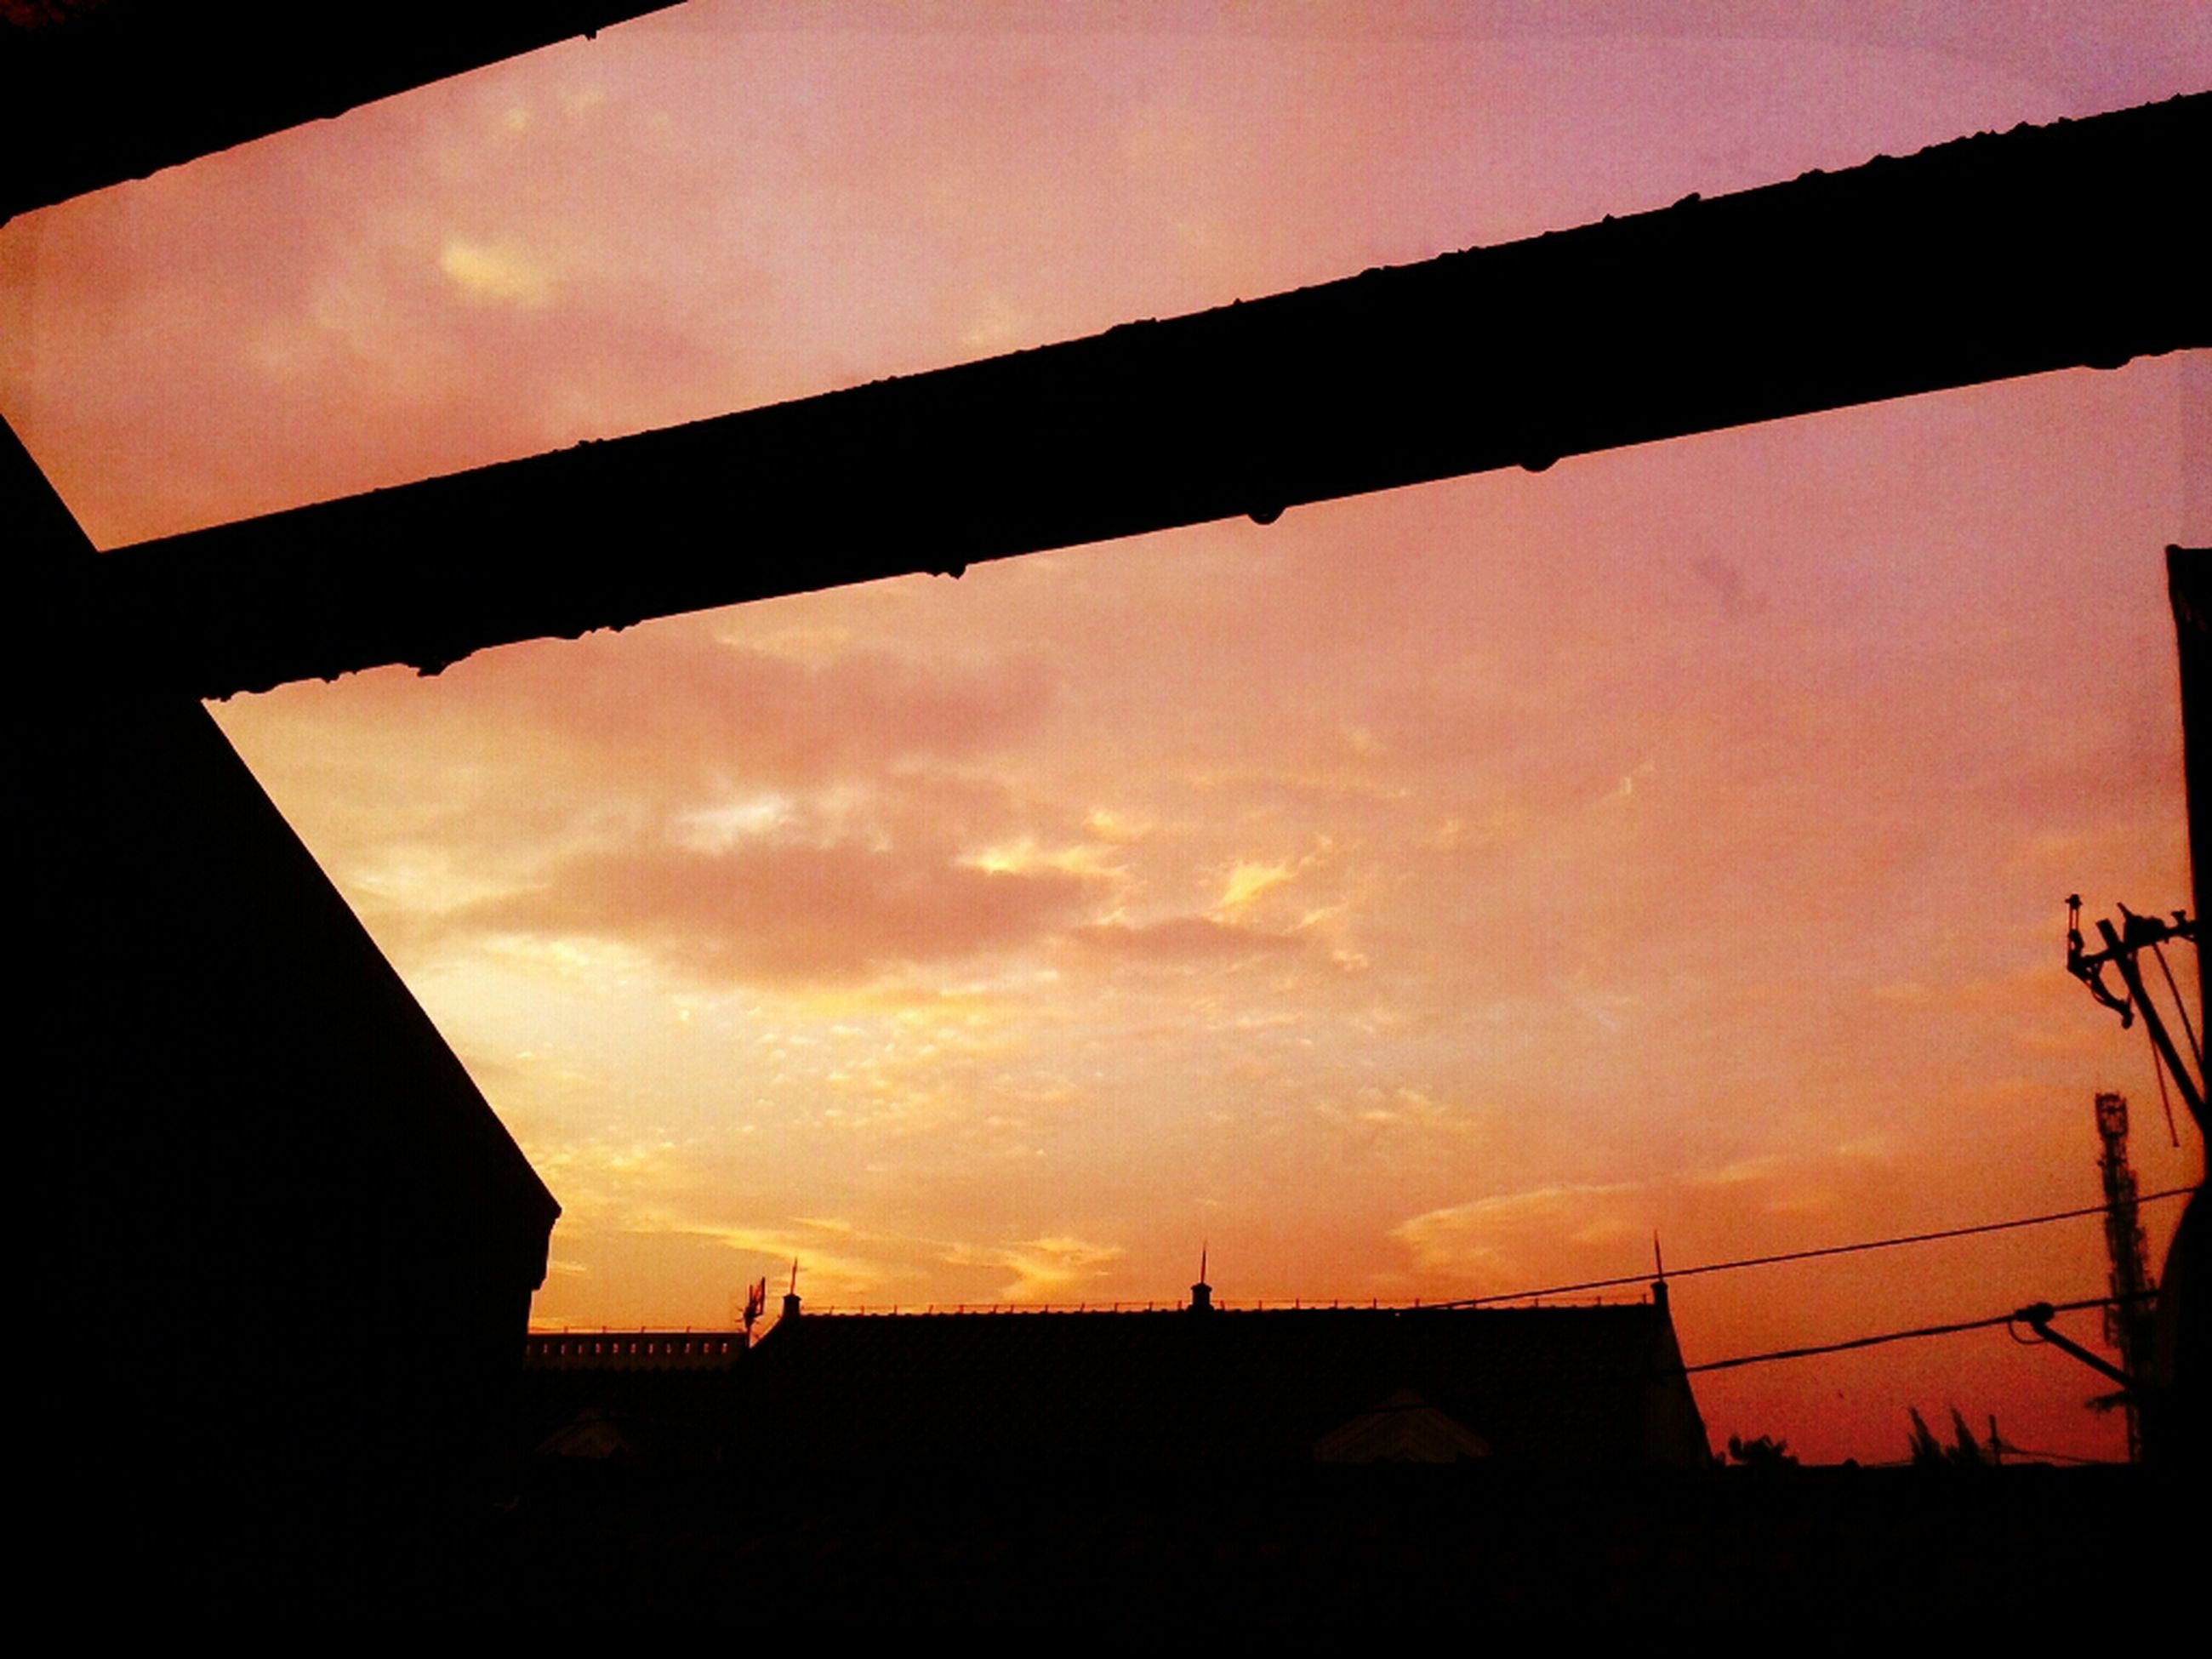 architecture, built structure, sunset, building exterior, silhouette, sky, low angle view, orange color, cloud - sky, building, house, residential structure, cloud, residential building, dusk, outdoors, no people, city, dark, nature